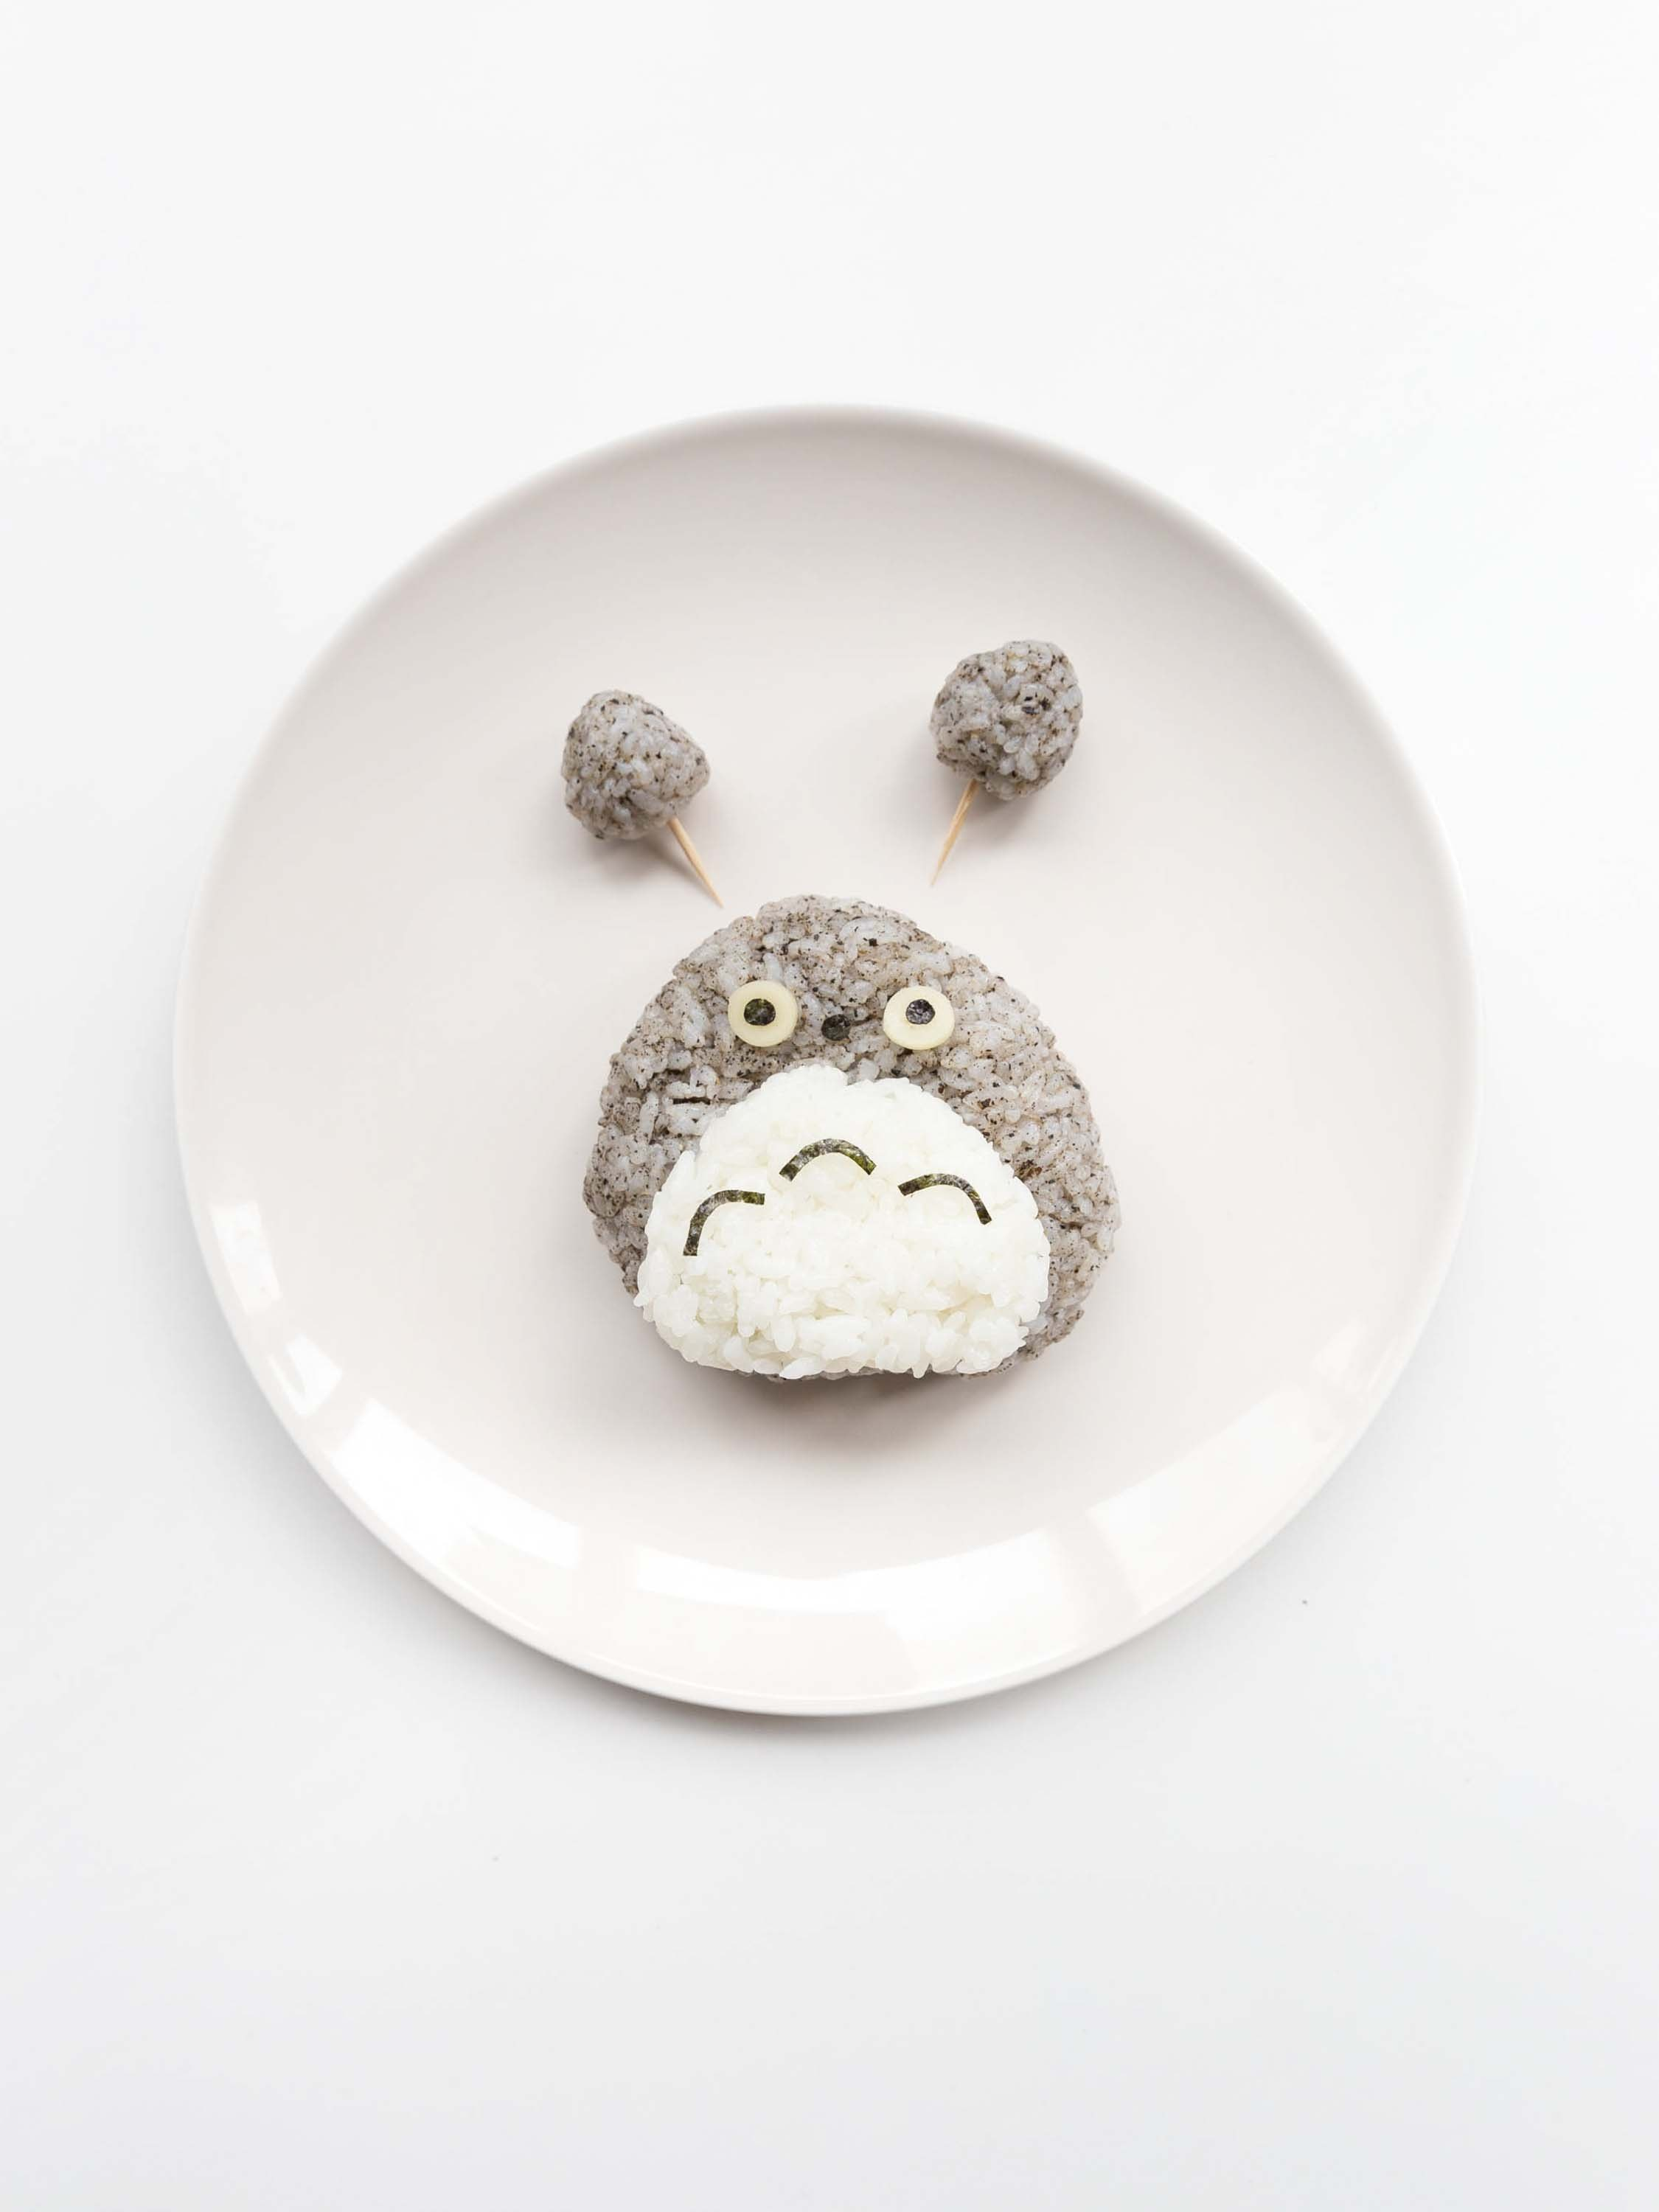 how_to_make_totoro_rice_cake_food_styling_5.jpg